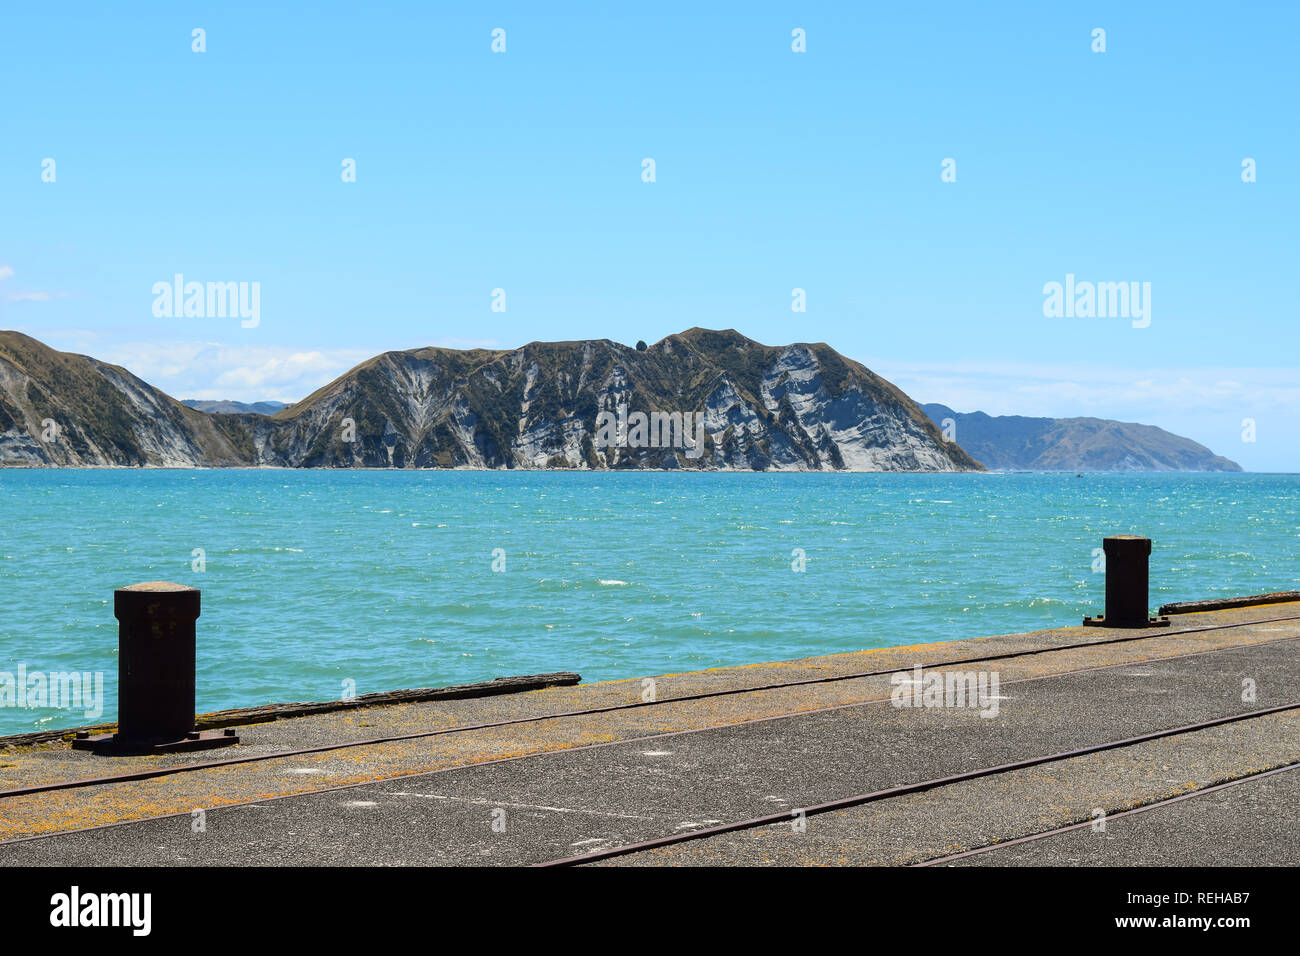 Metal posts along the side of the wharf, with the distant mainland in the background in Tolaga Bay, New Zealand - Stock Image